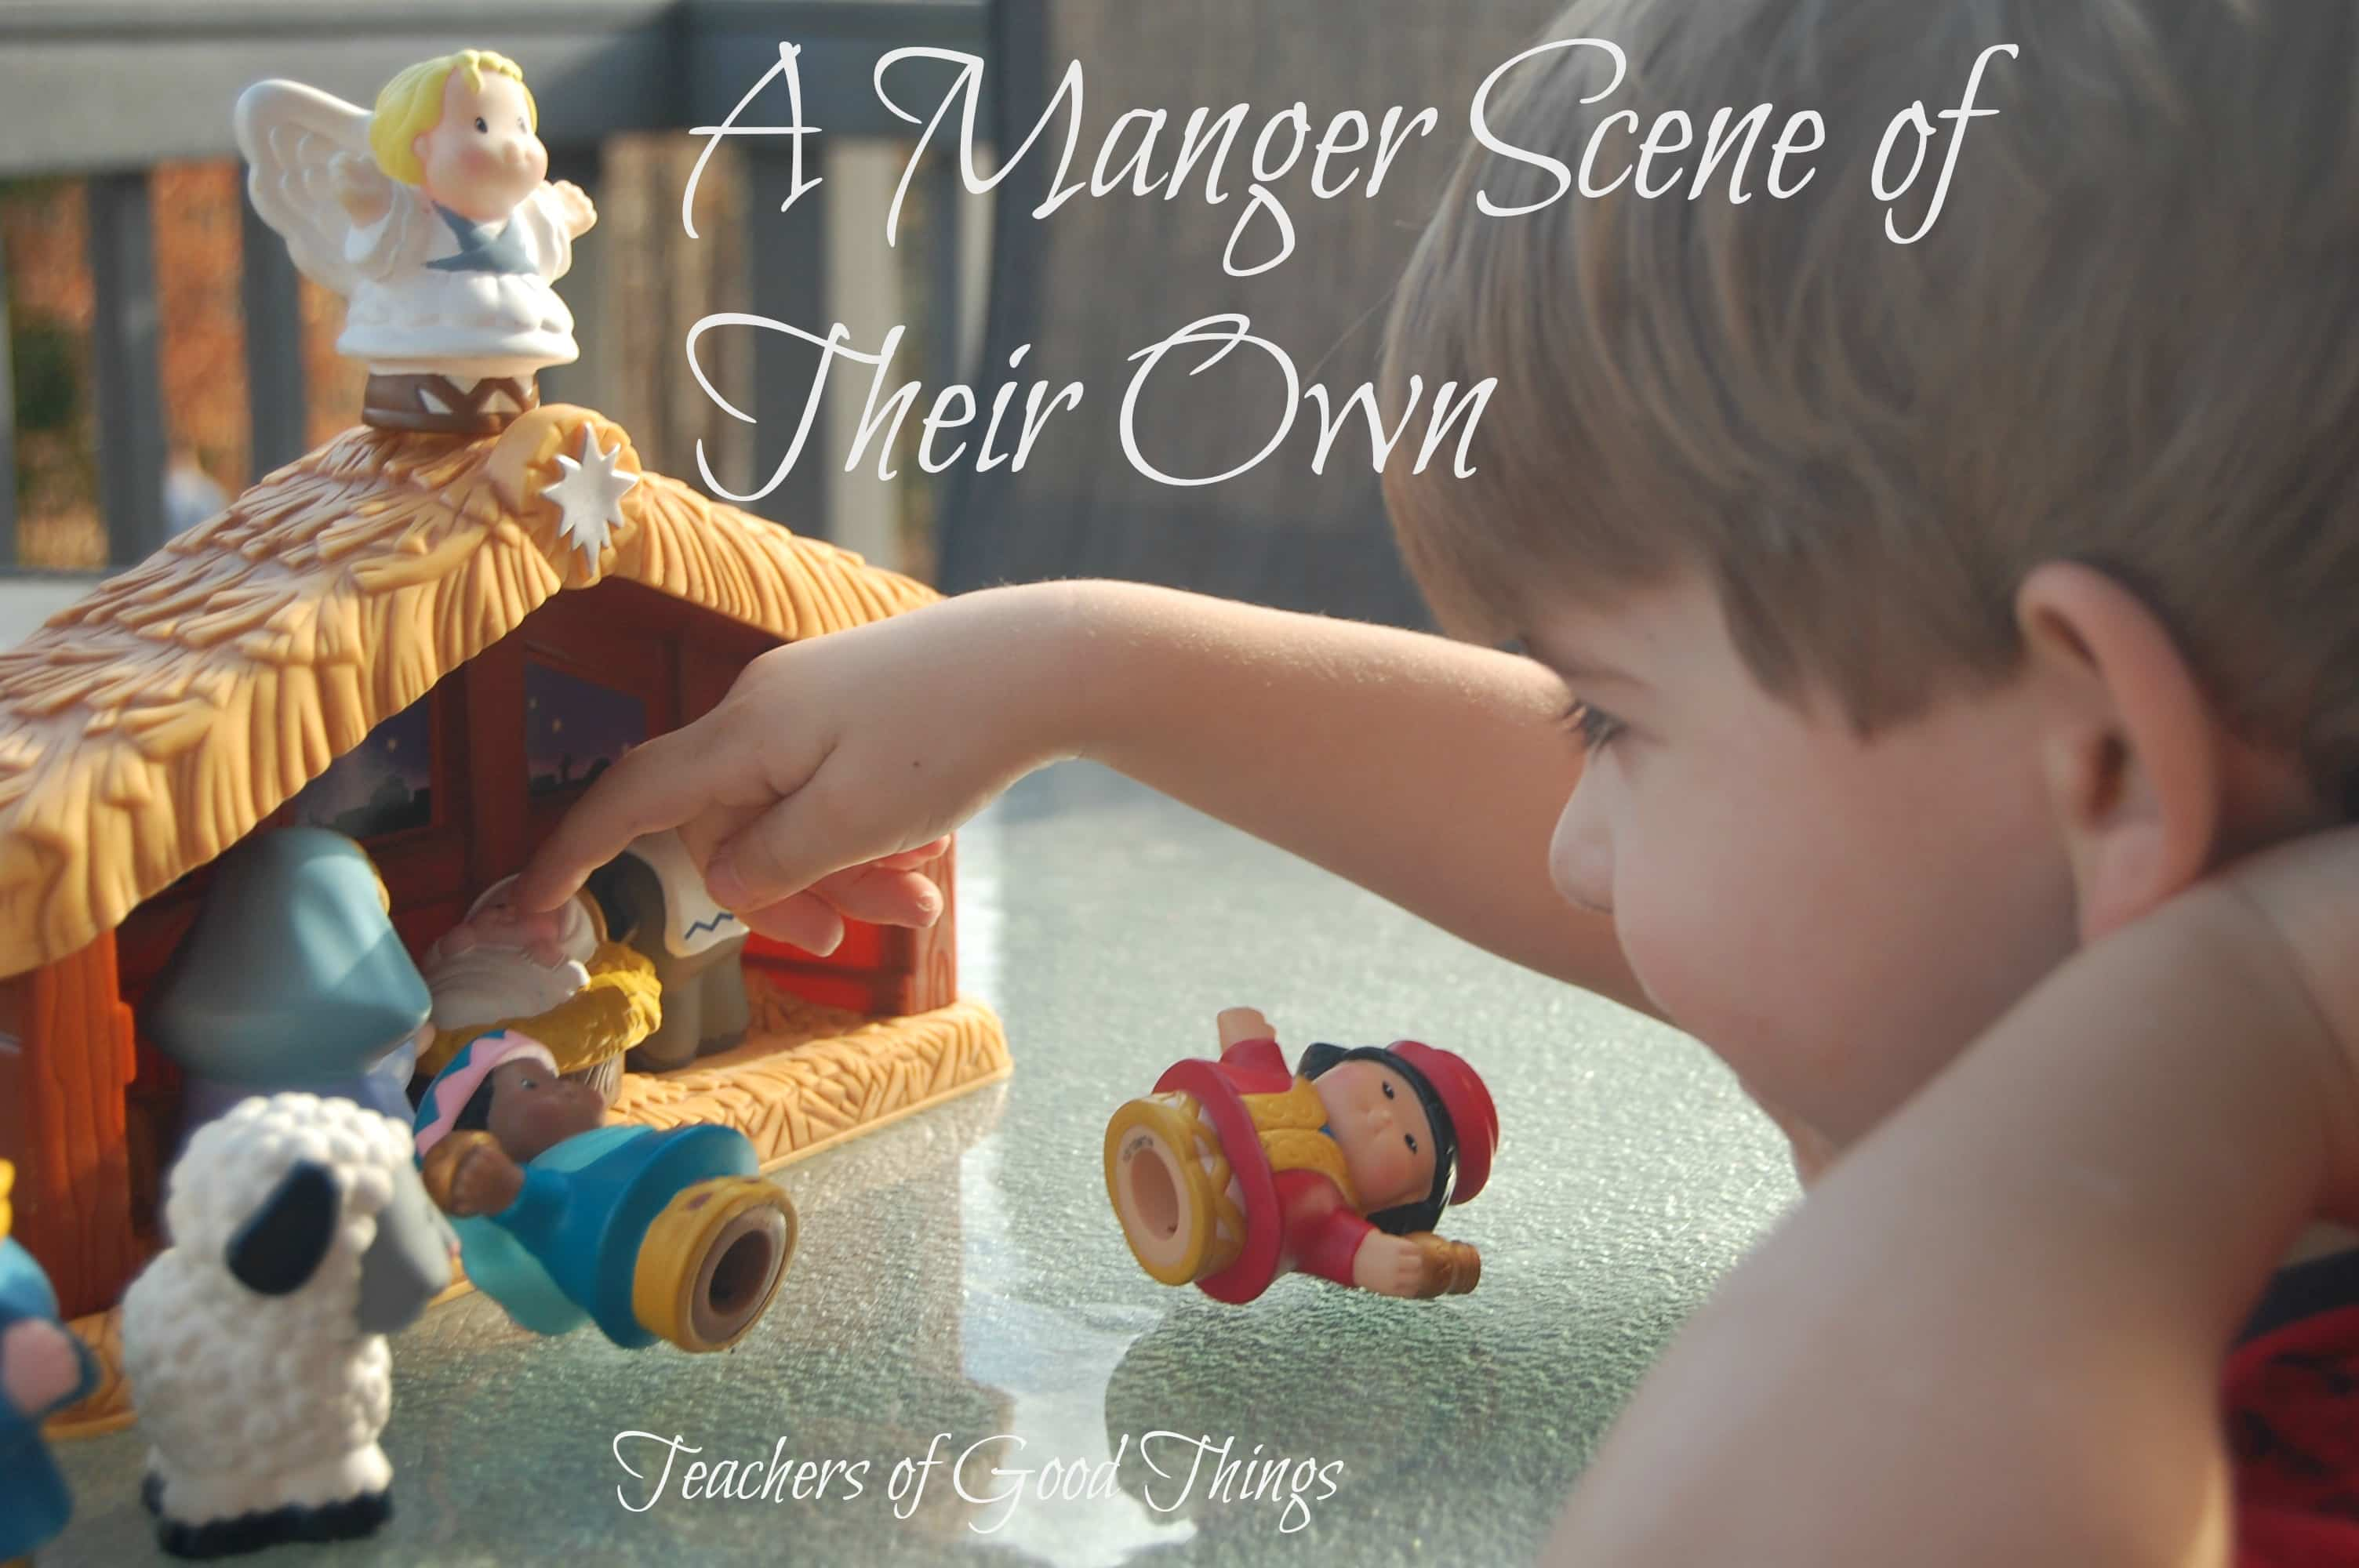 A Manger Scene of Their Own